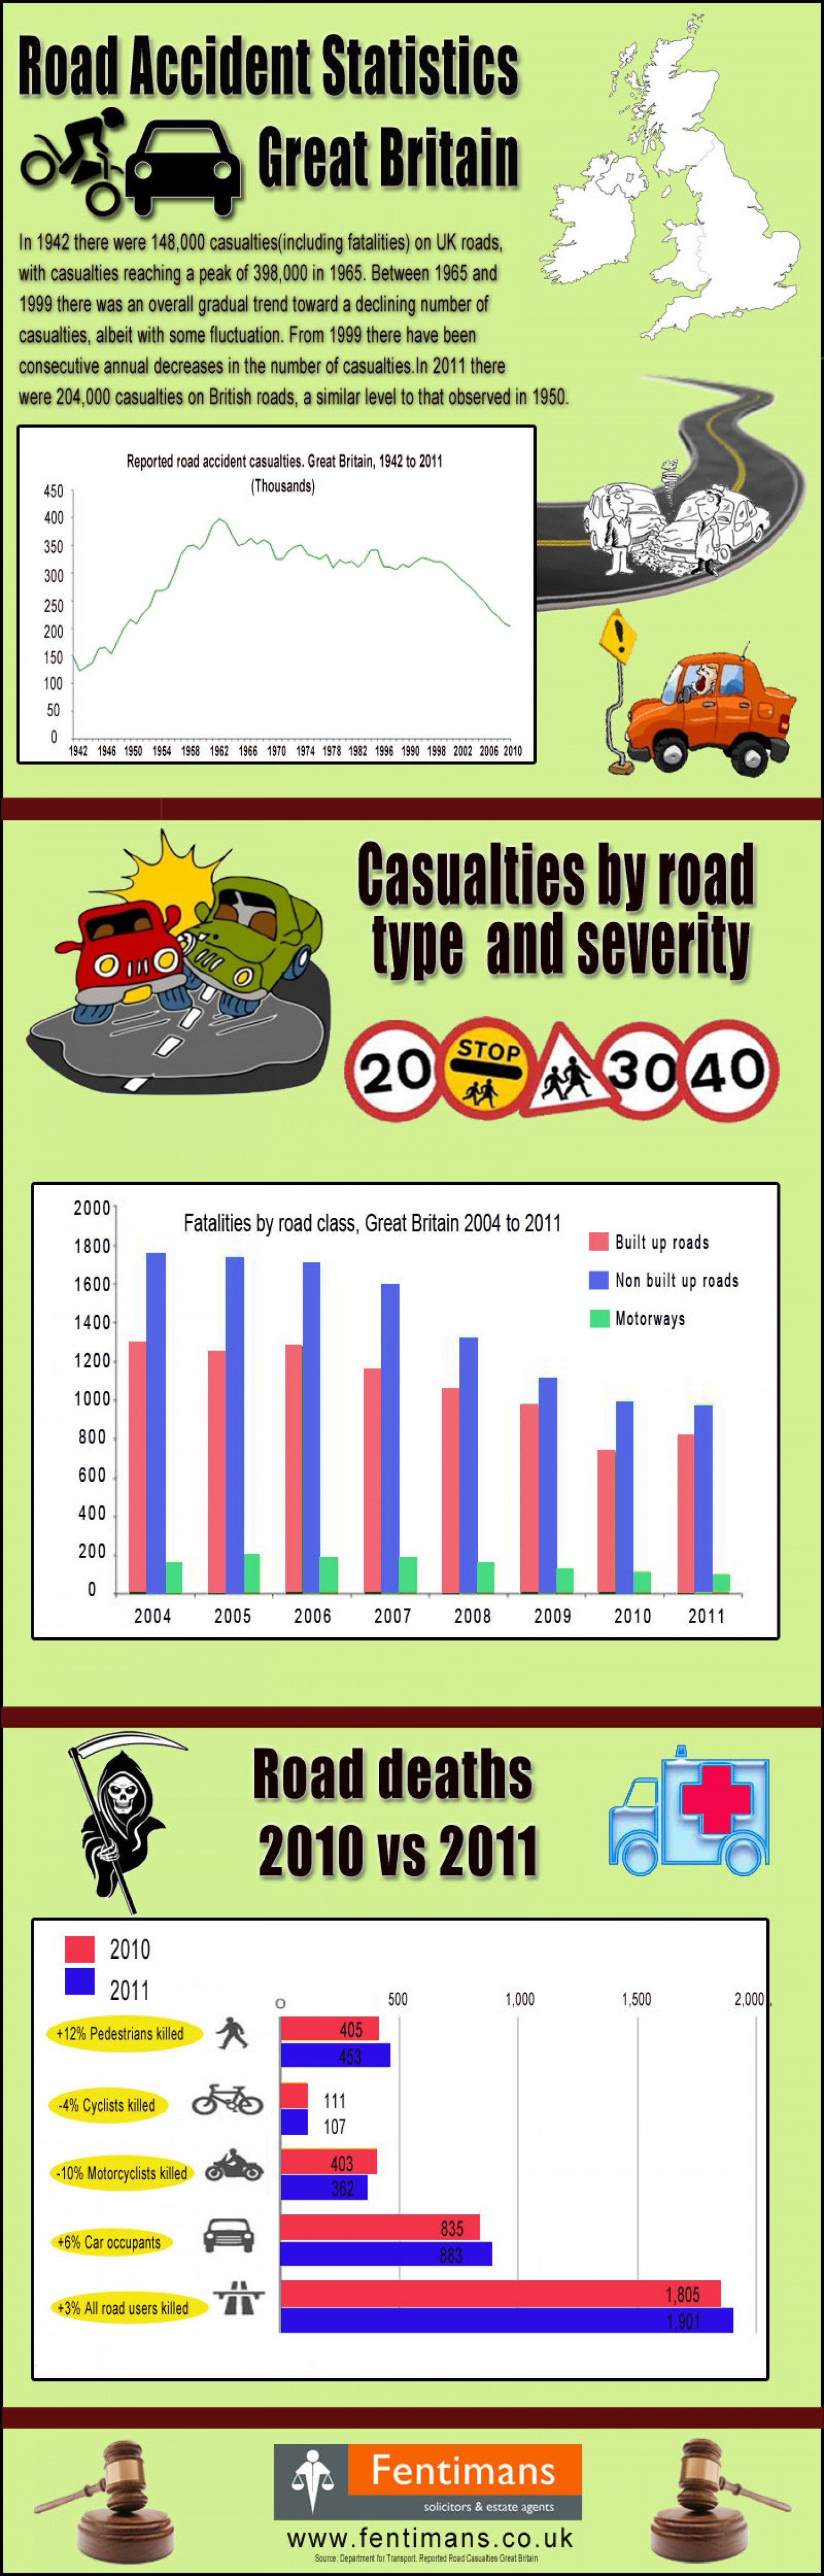 Road users killed in 2010 VS 2011